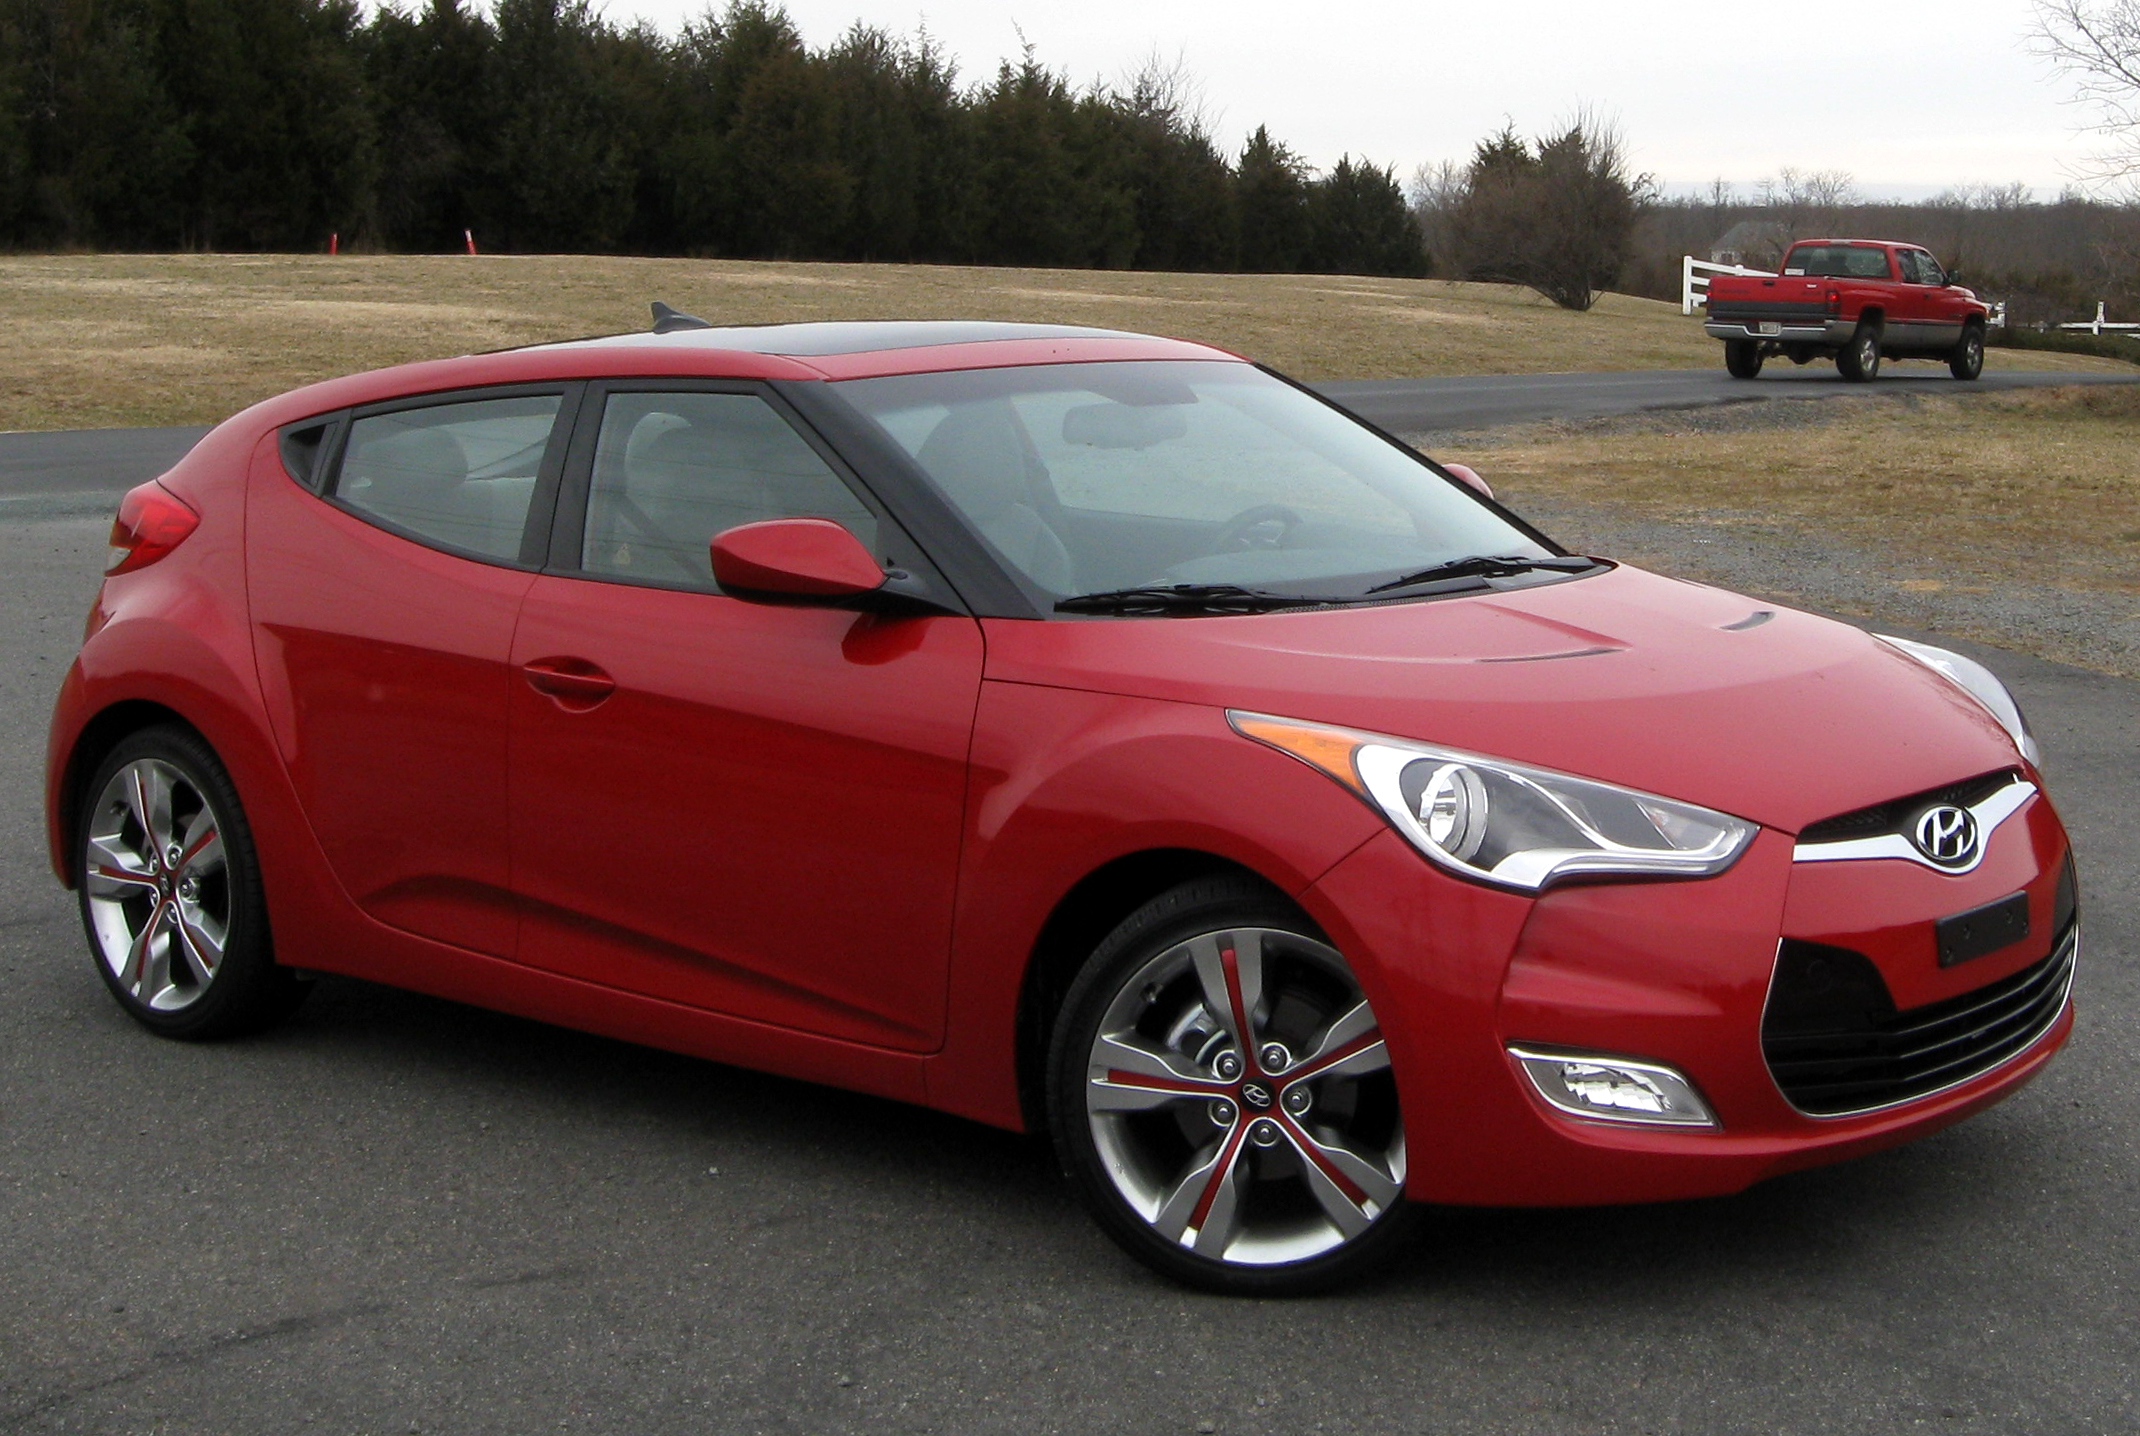 Used 2012 Hyundai Veloster Pricing Edmunds Autos Post